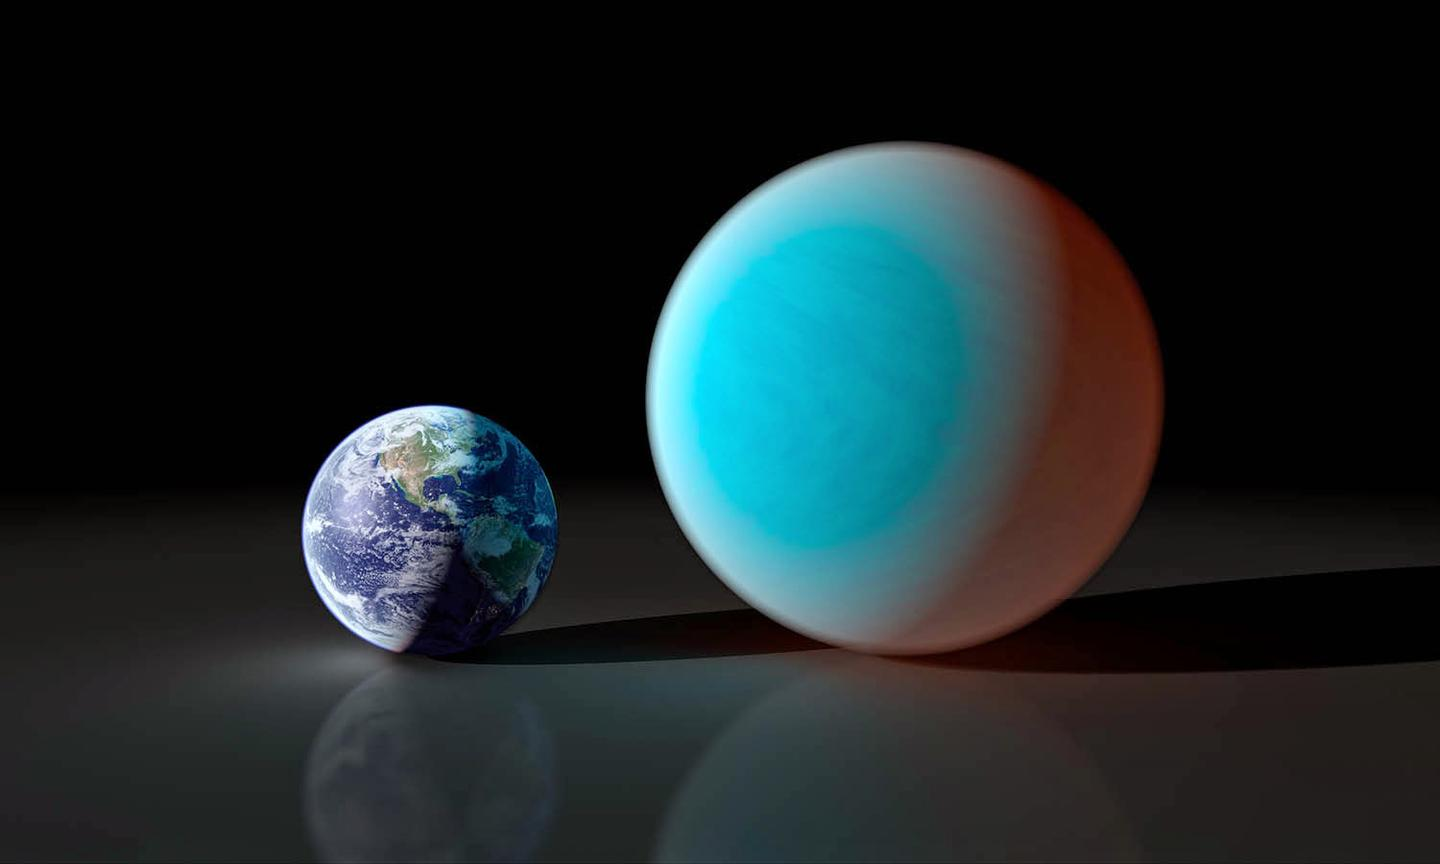 Artist's conception shows the Earth (left) compared to the super-Earth 55 Cancri e (right), whose transit across the front of its host star was detected from the ground (Image: NASA/JPL)